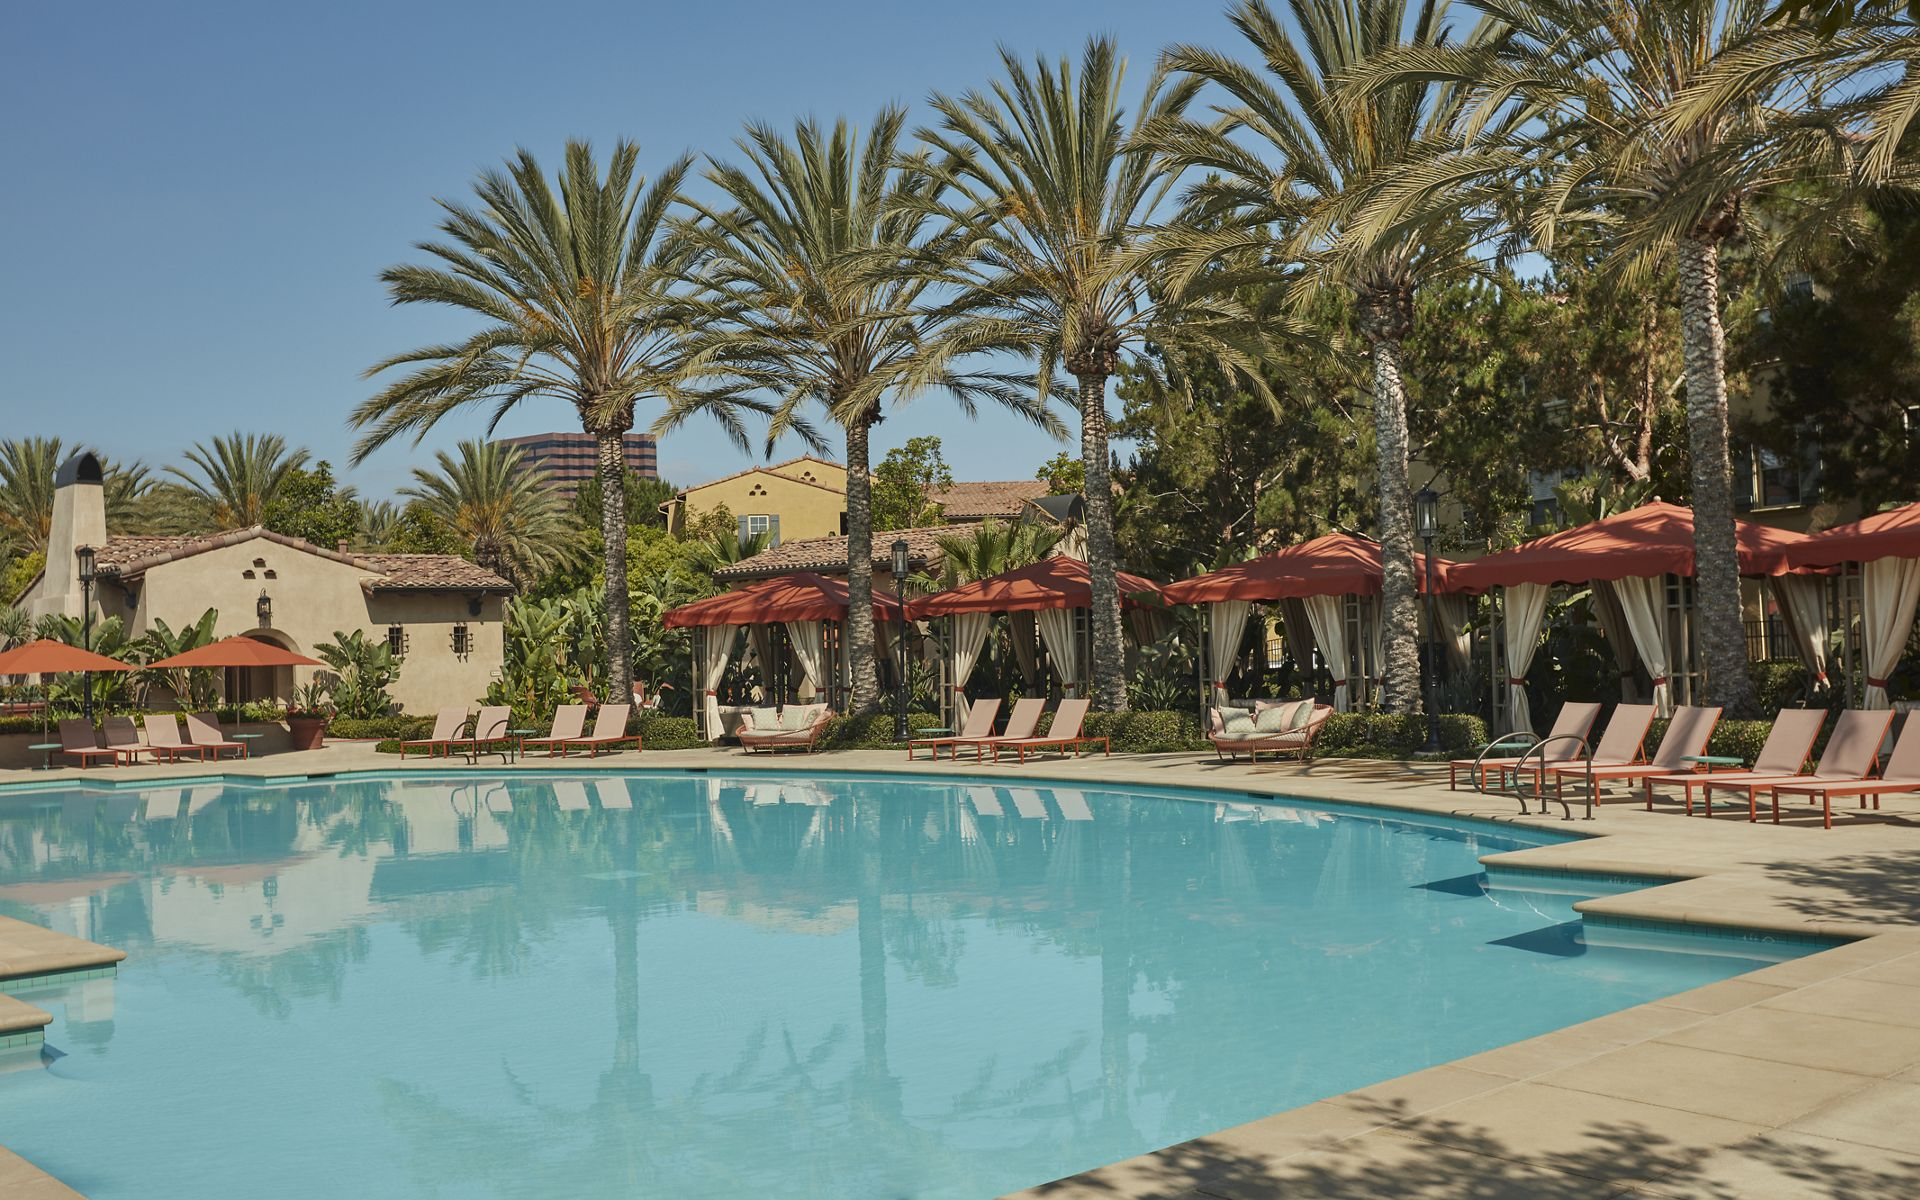 Pool view at The Enclave at South Coast Apartment Homes in Costa Mesa, CA.